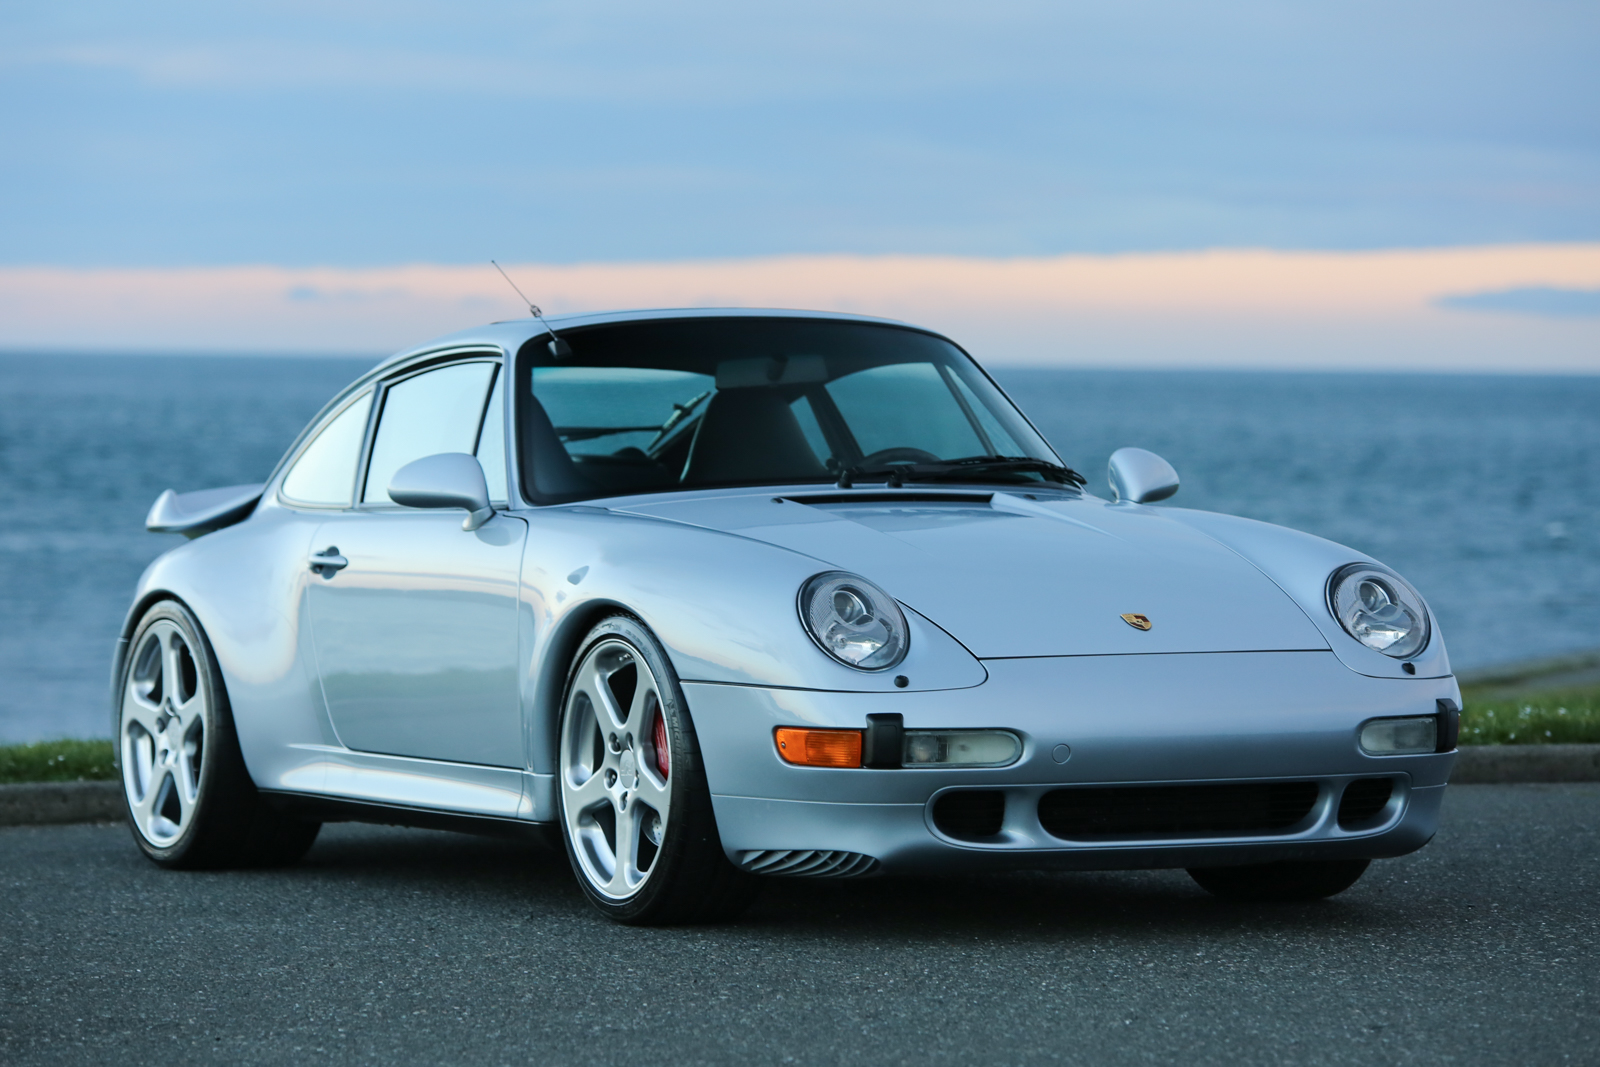 1996 porsche 993 turbo 911 for sale silver arrow cars ltd. Black Bedroom Furniture Sets. Home Design Ideas